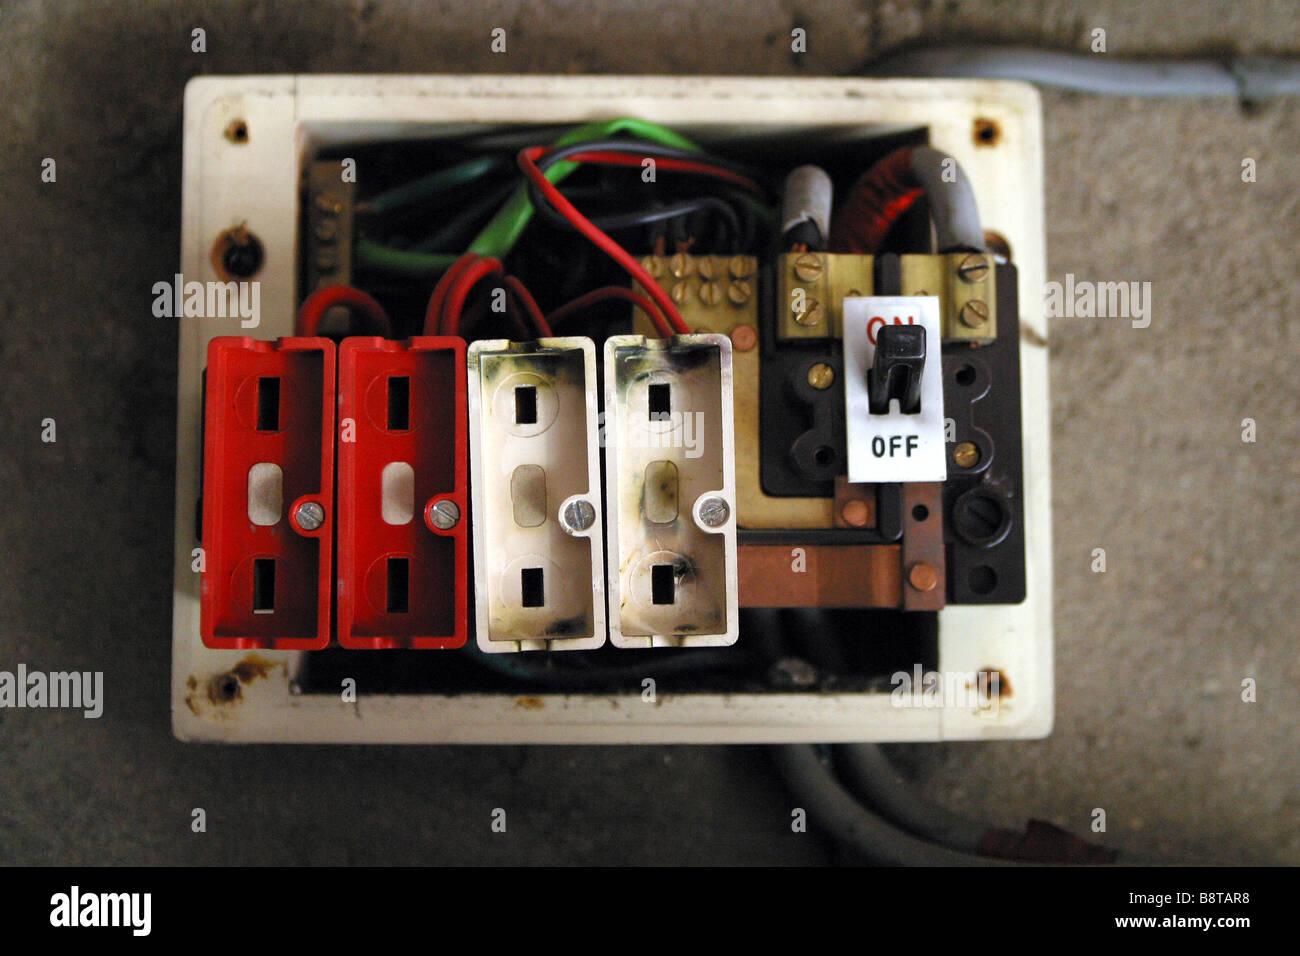 House Bus Fuse Box Wiring Simple Diagram Shematics Panel Penny Image Old